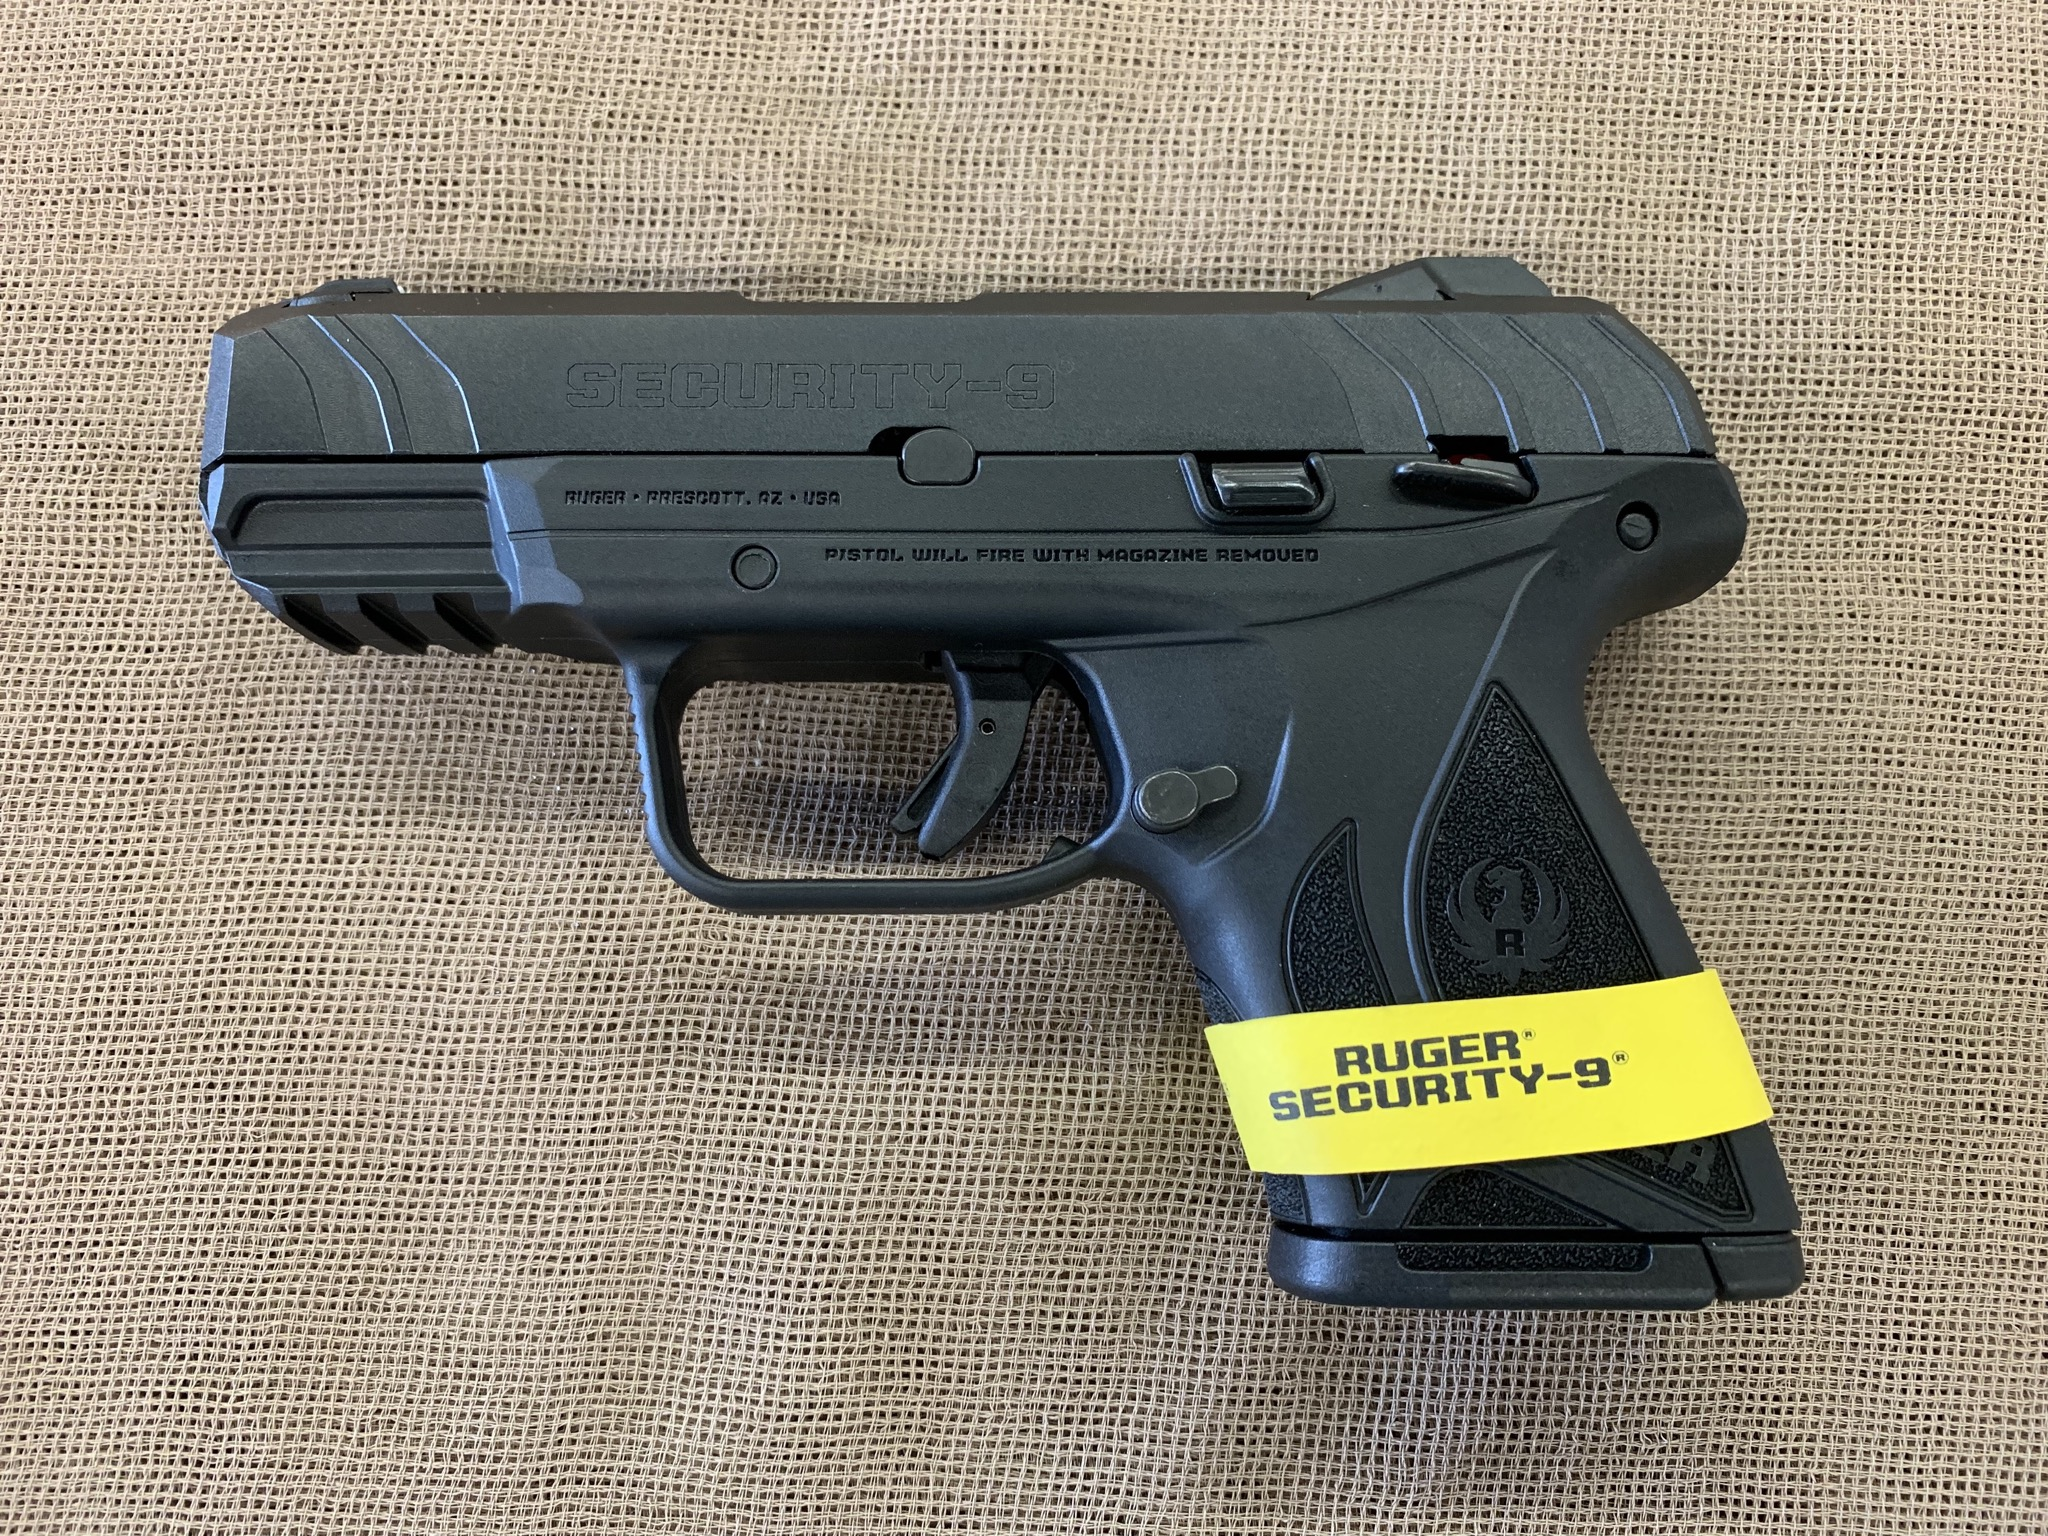 Ruger Security-9 compact 9mm 10+1 capacity